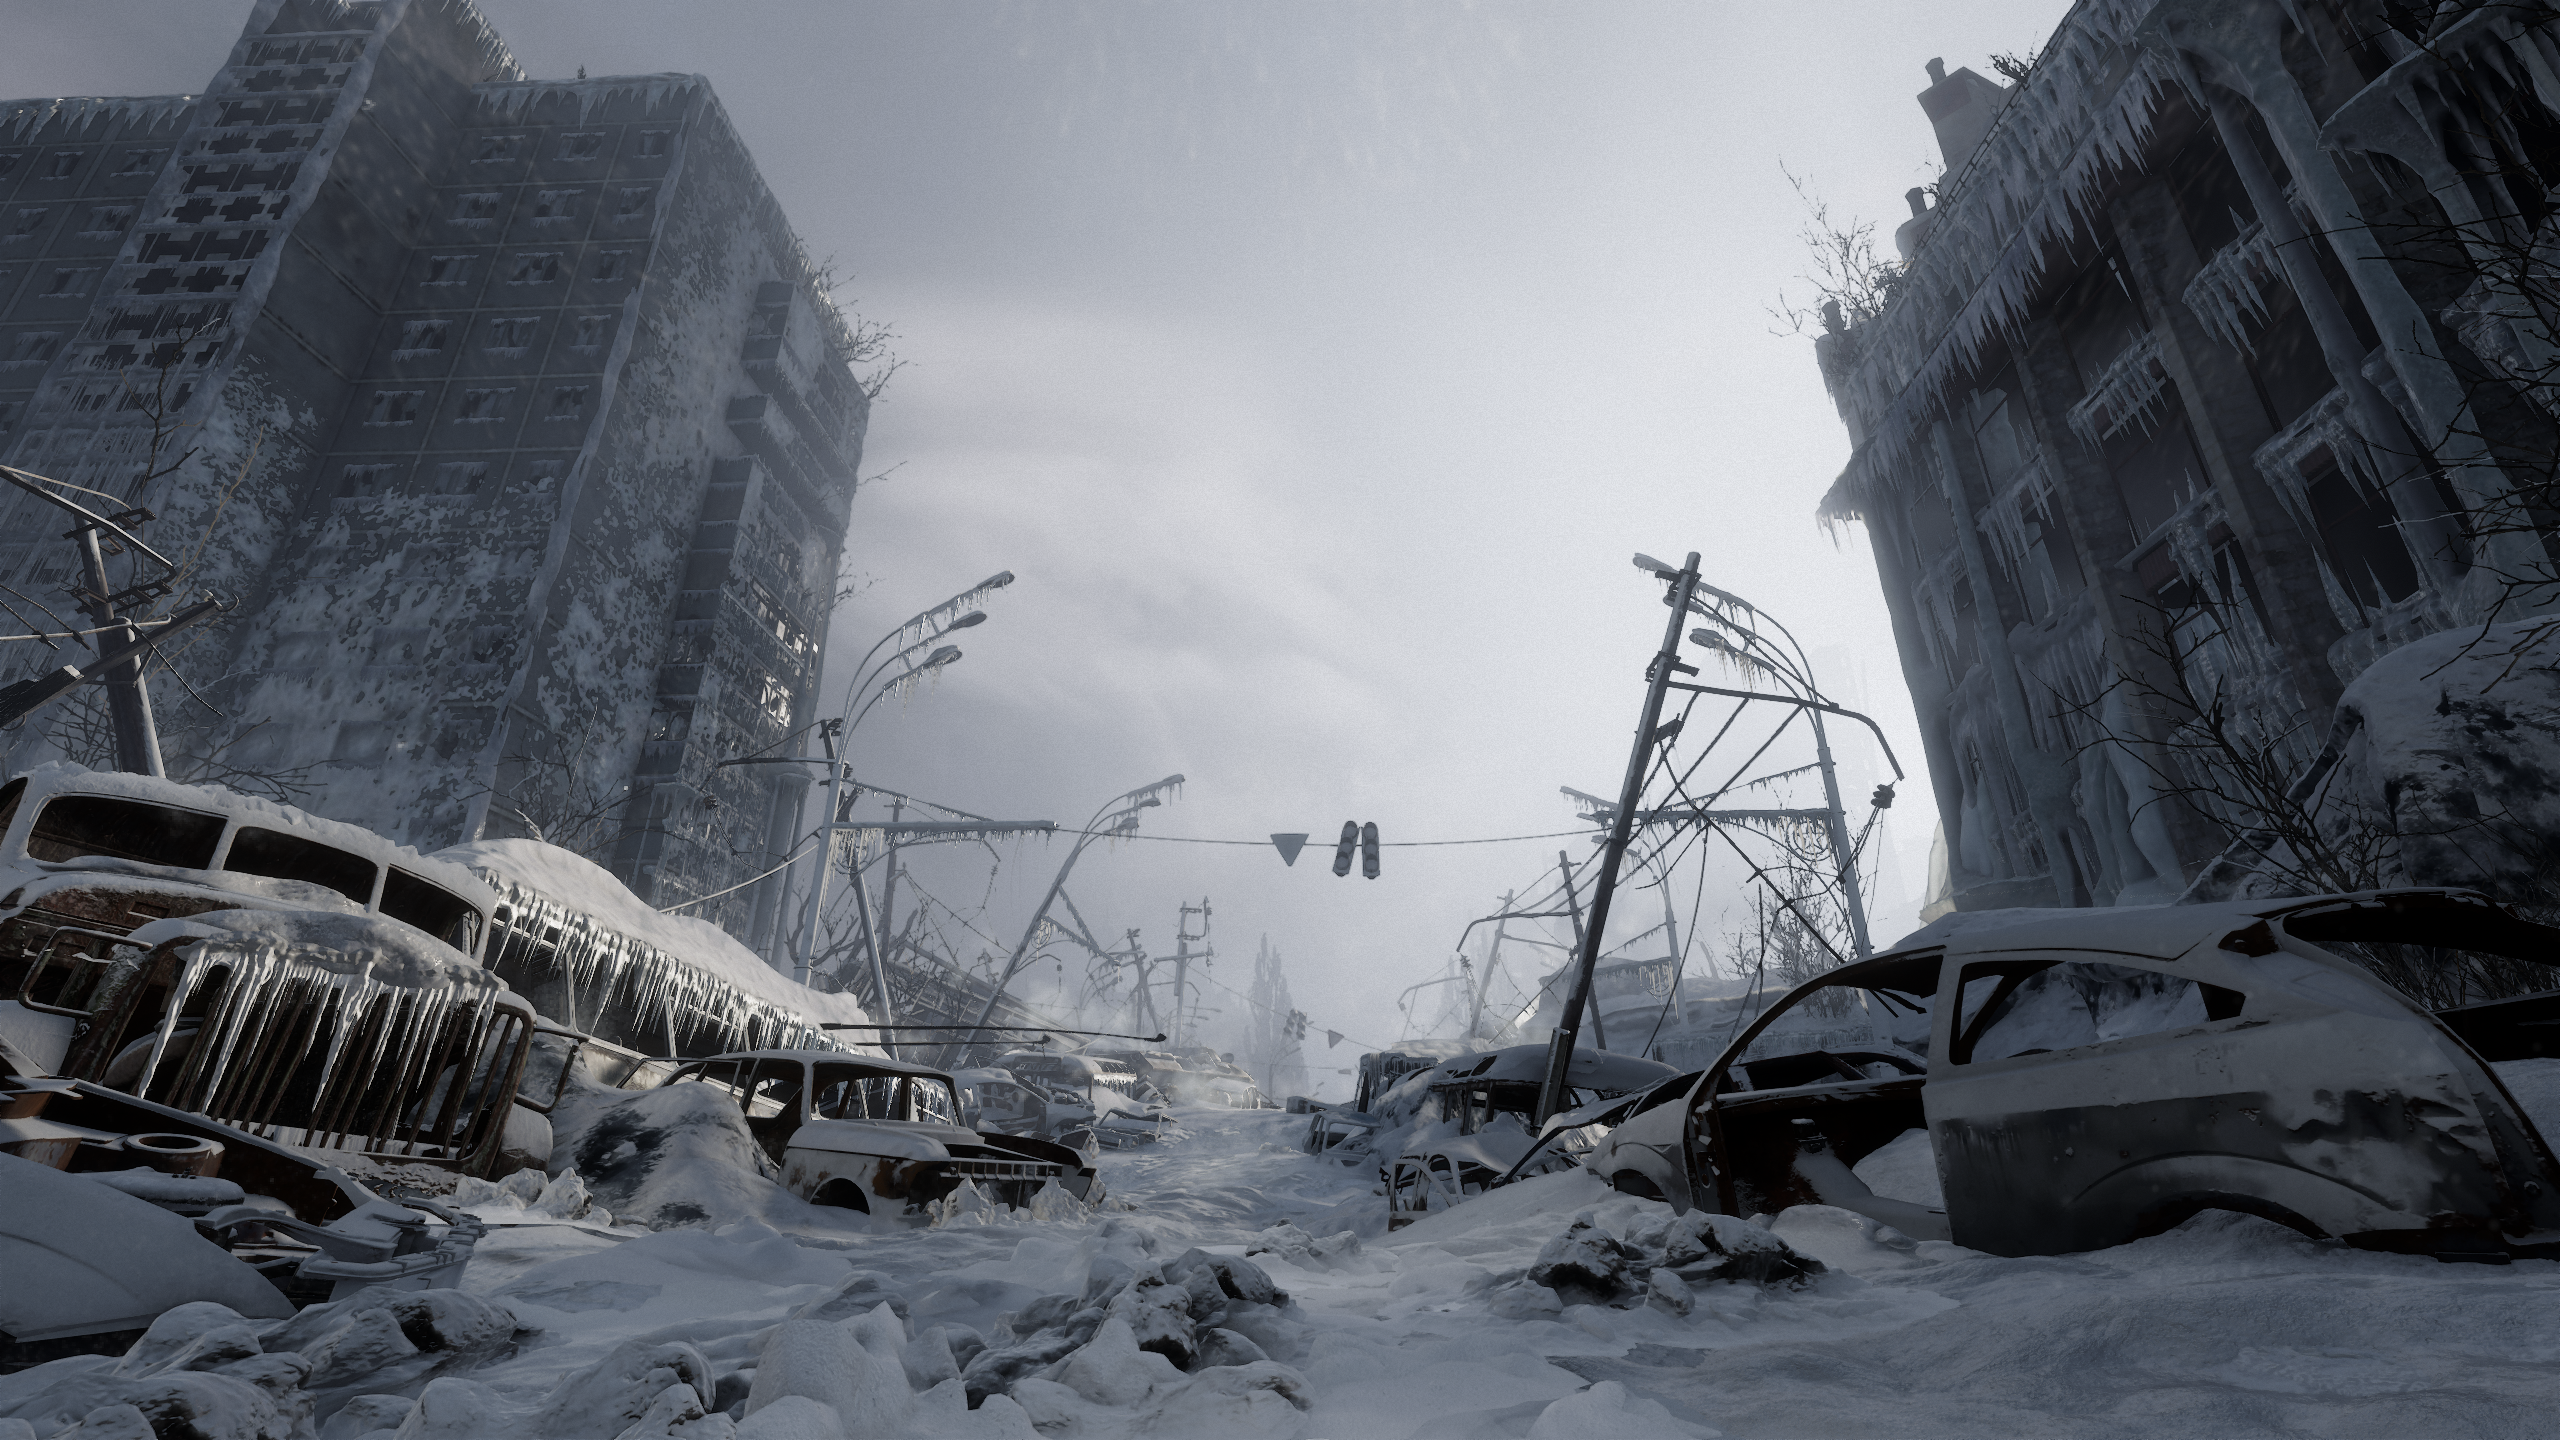 General 2560x1440 Metro Exodus RTX snow video games apocalyptic wreck